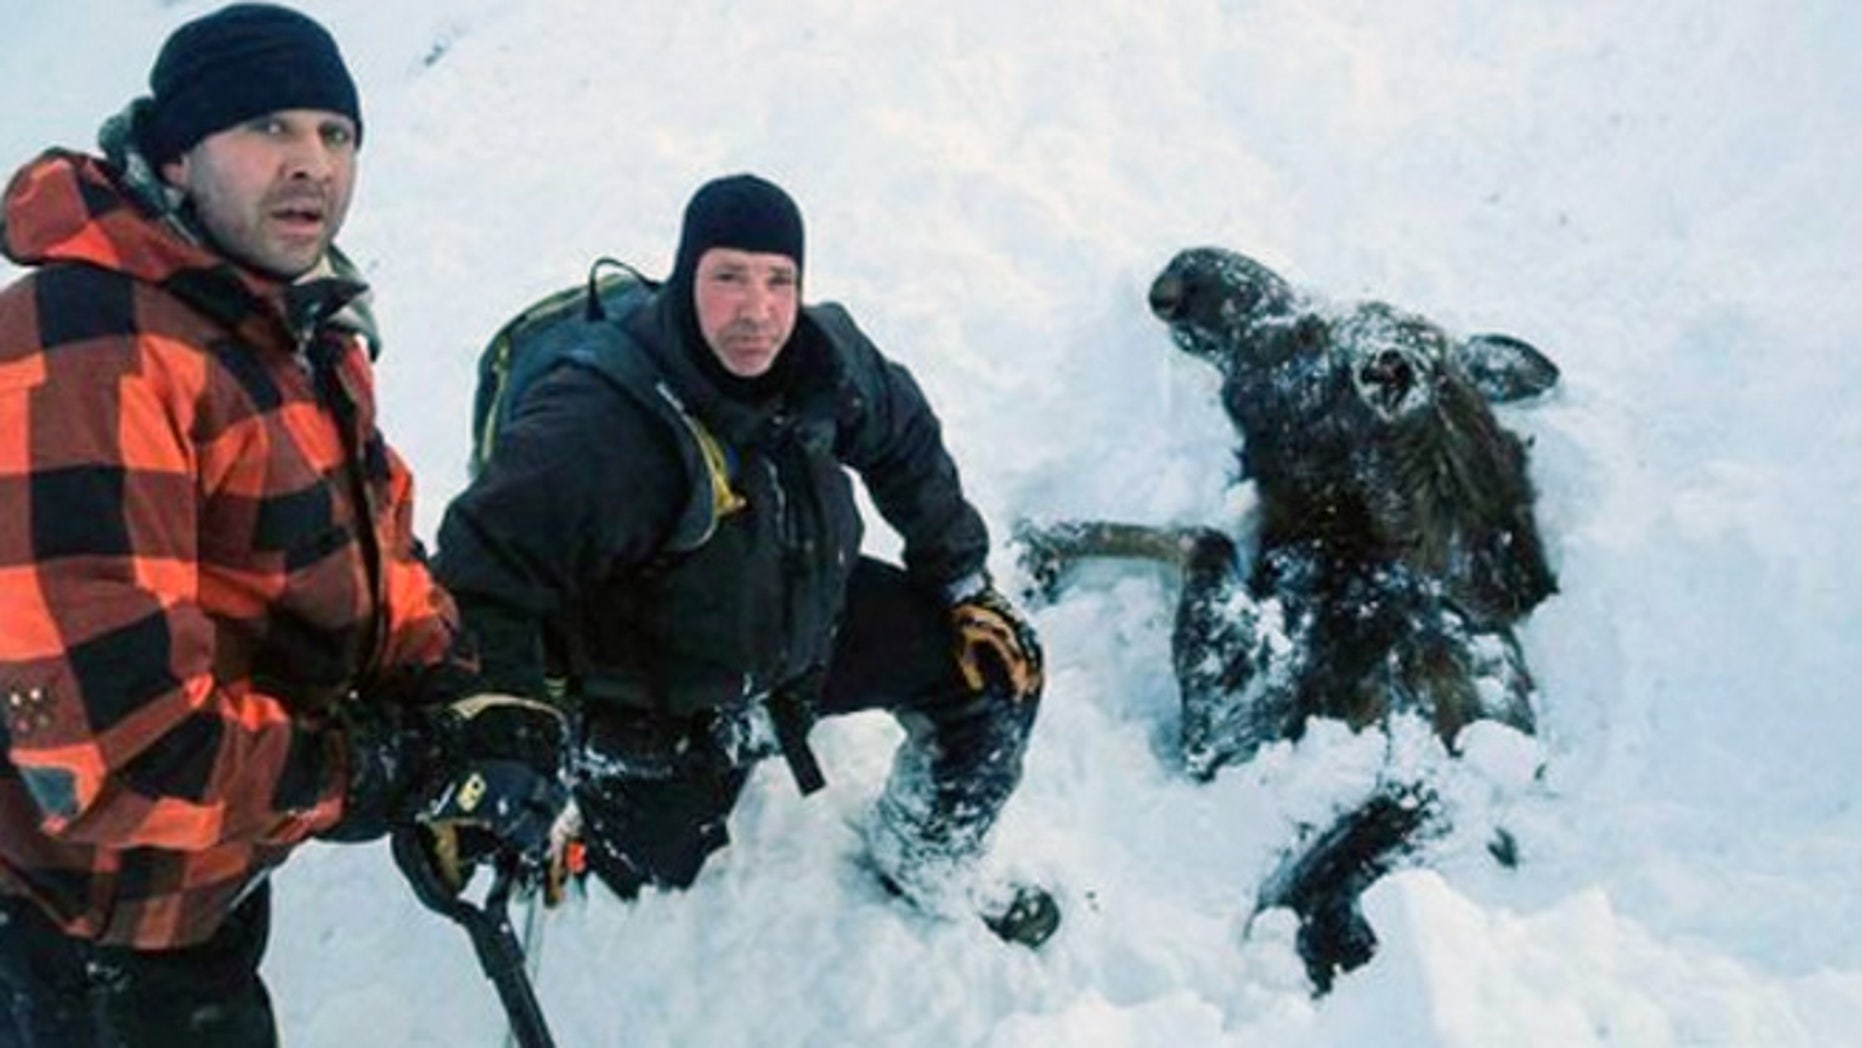 From the left, Robert Uphus, Marty Mobley pose next to a moose buried in snow. Uphus told FoxNews.com the moose sprinted away moments after it was freed.